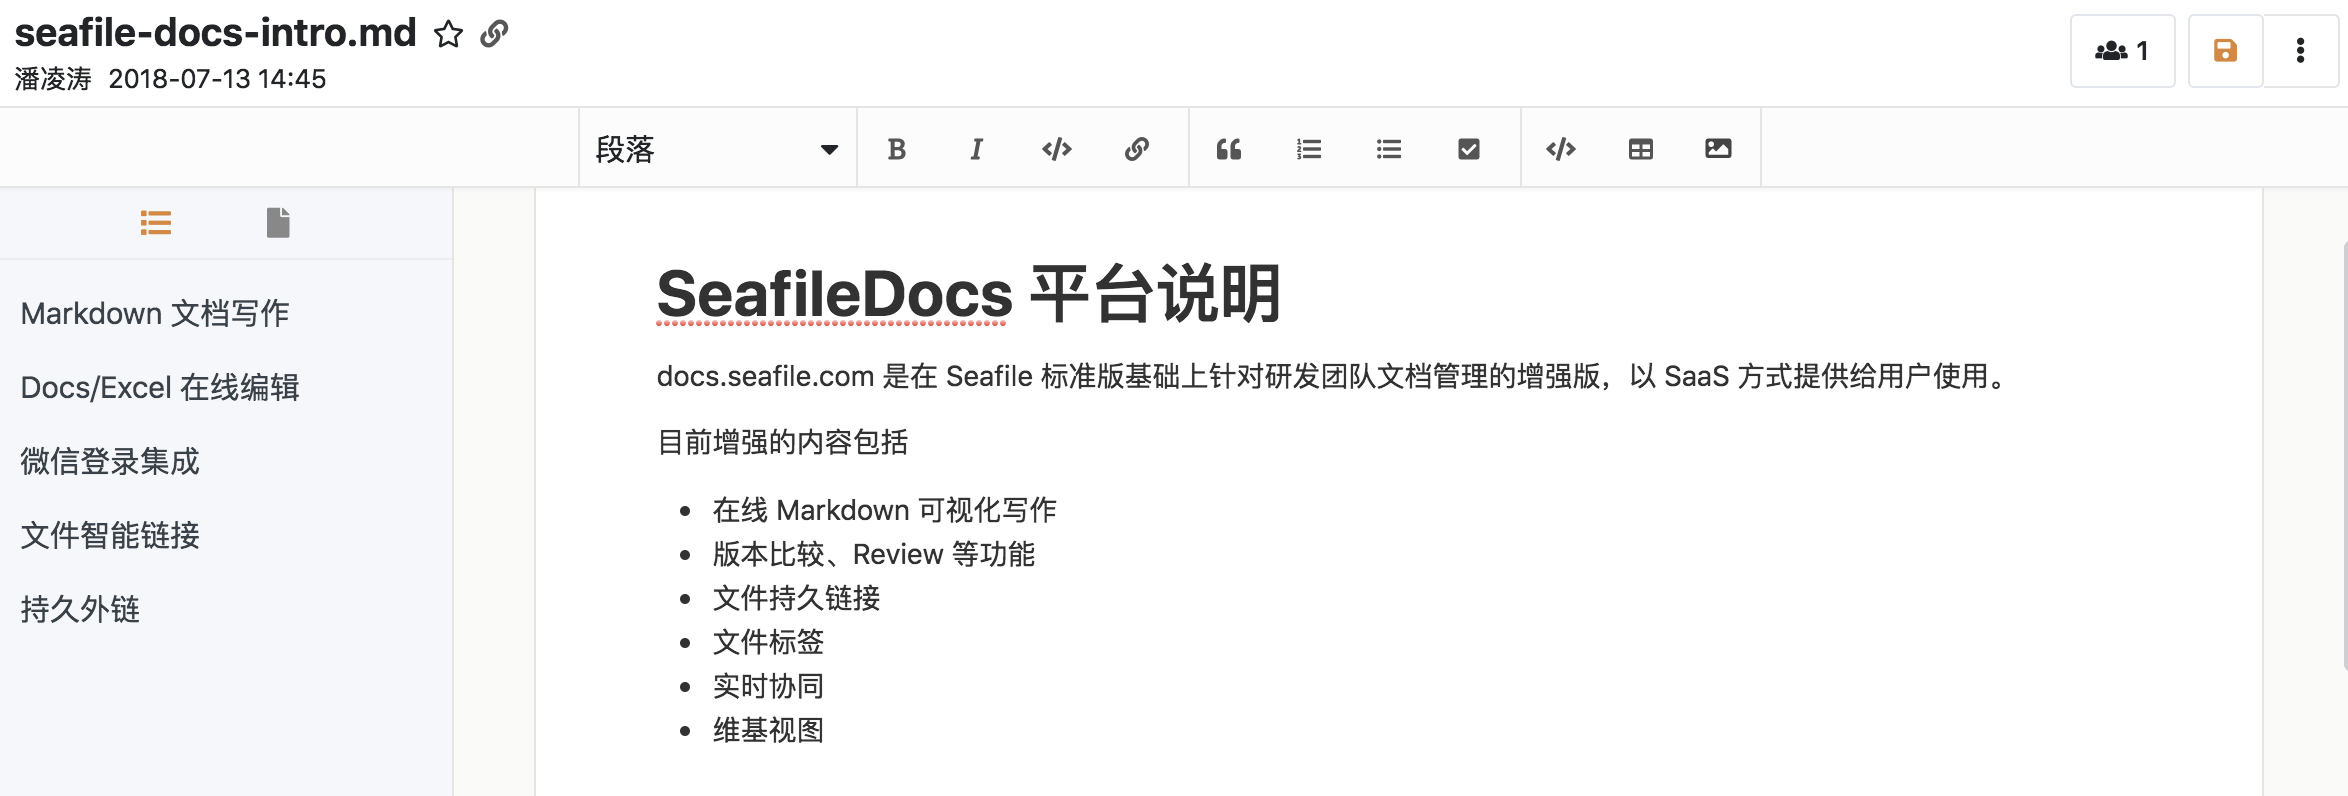 SeafileDocs: a special edition of Seafile that focus on online document